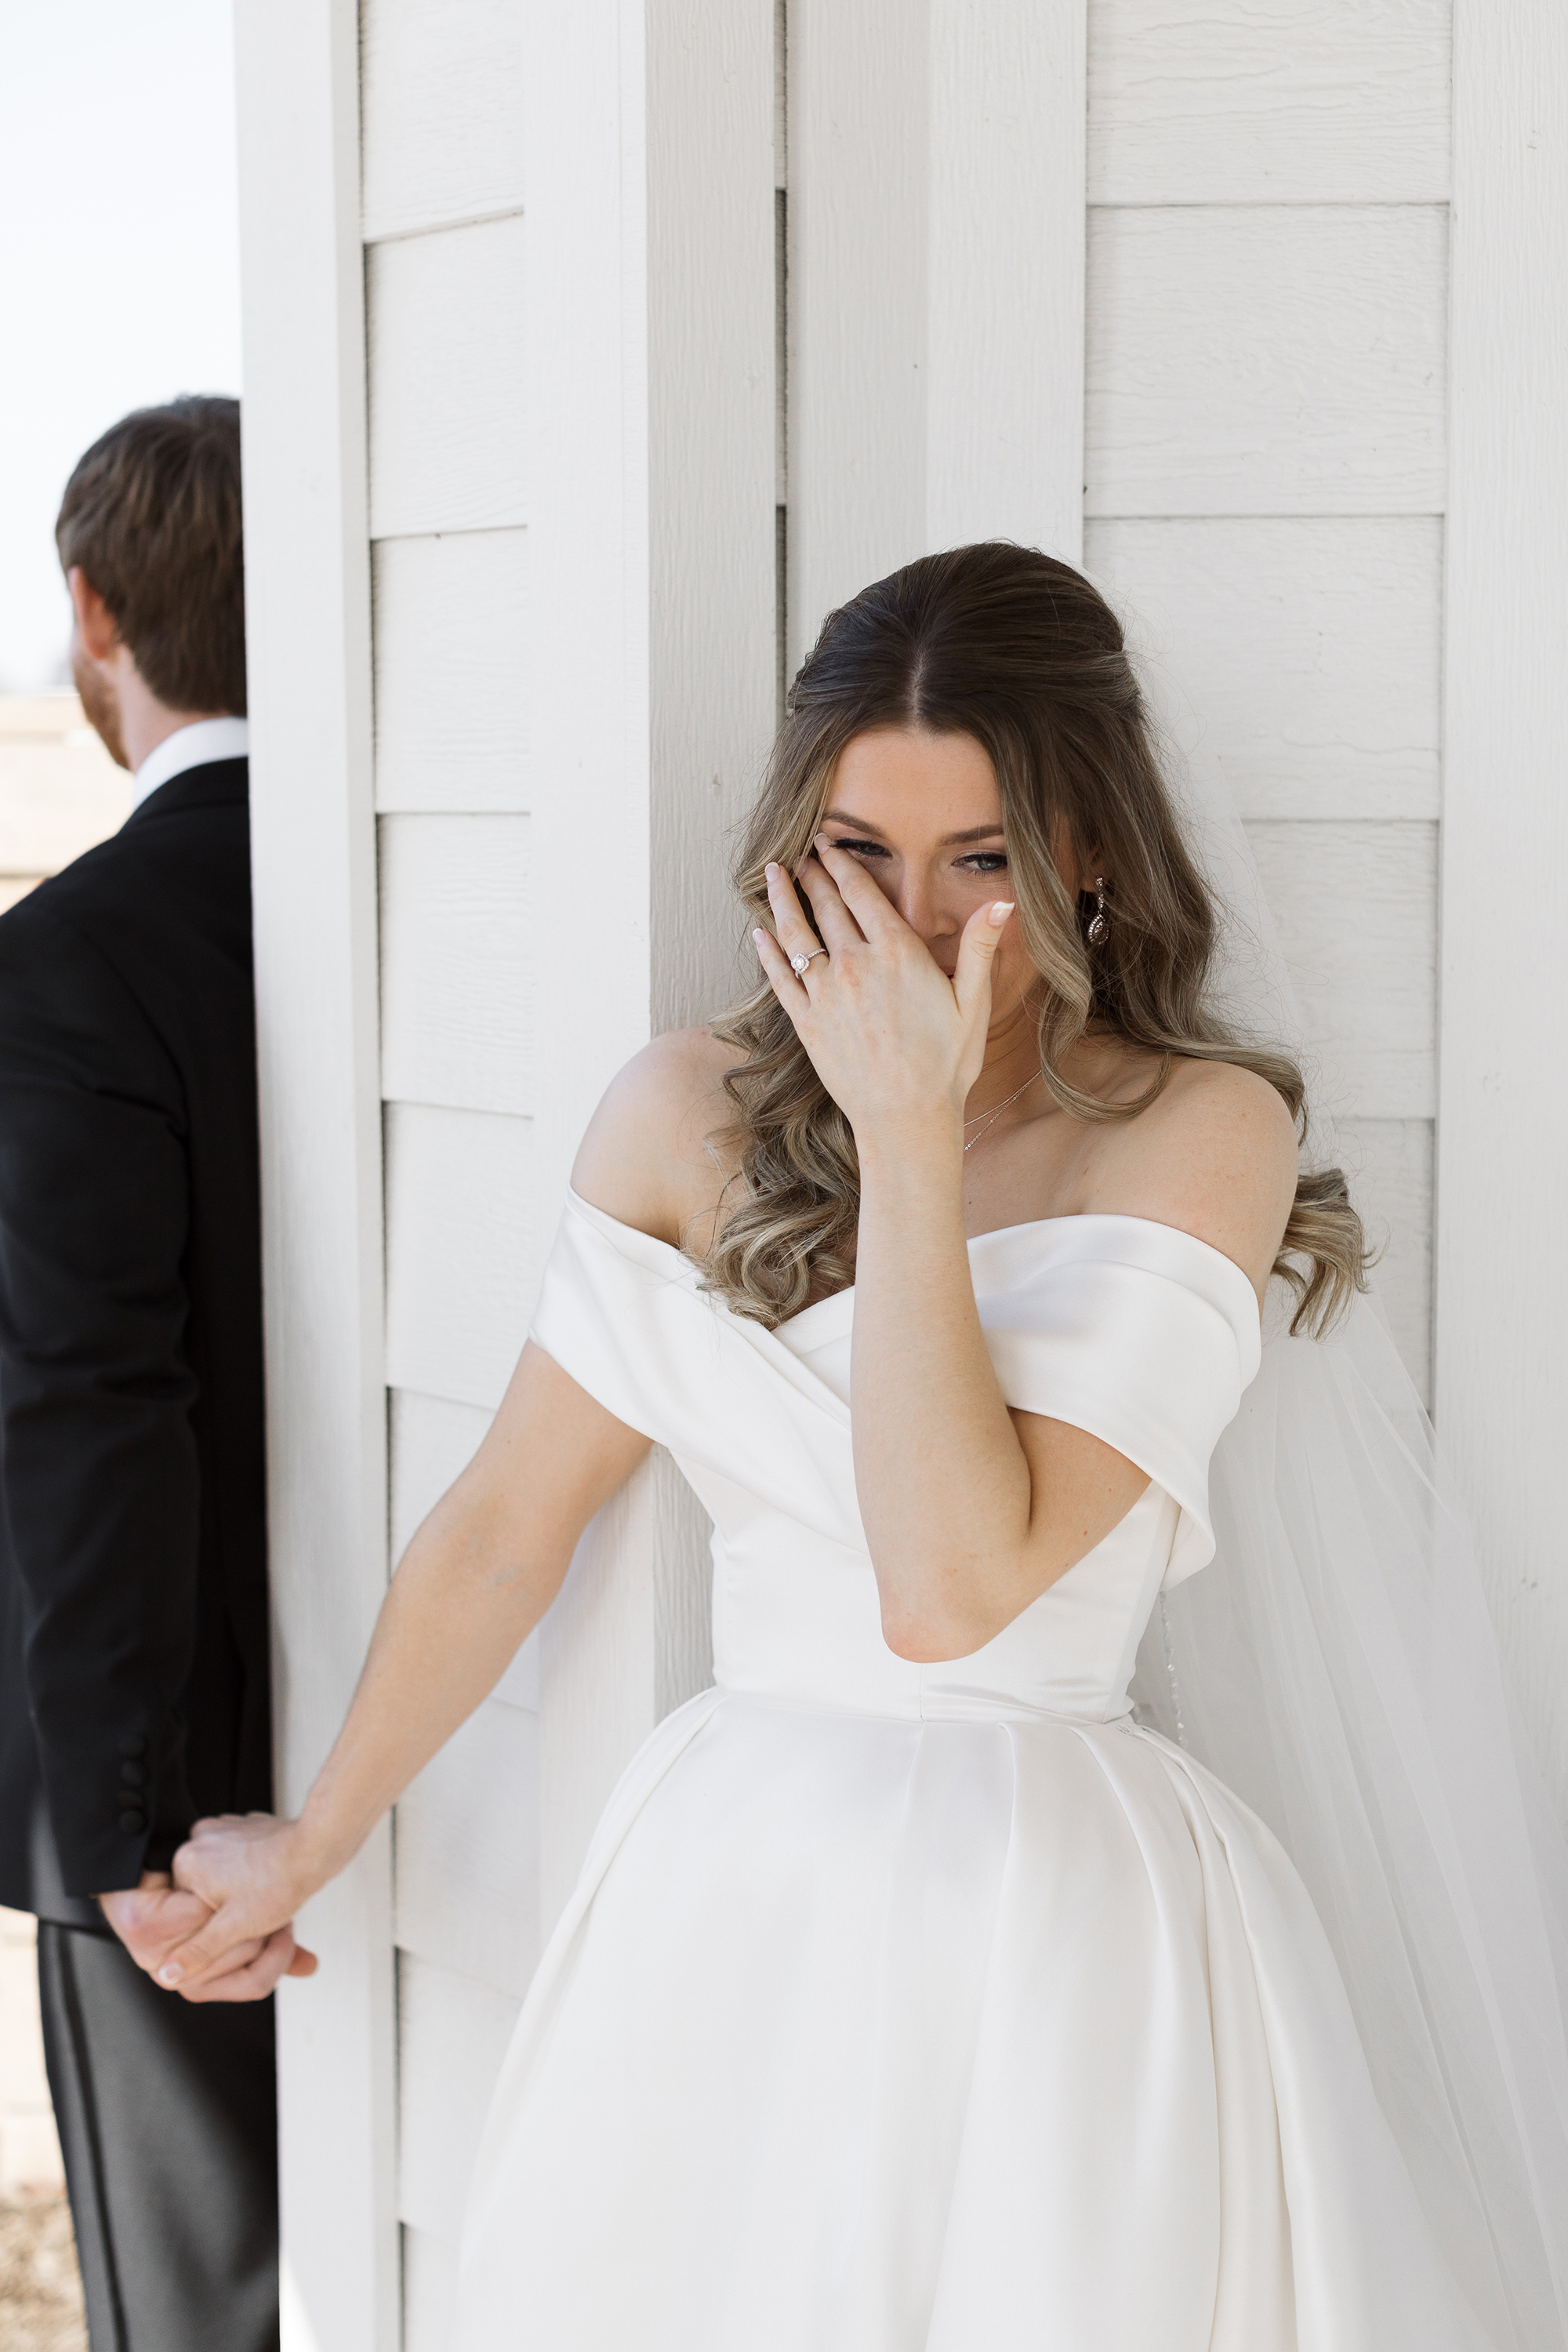 The bride and groom have their emotional first touch. The bride is wiping a tear from her eye.